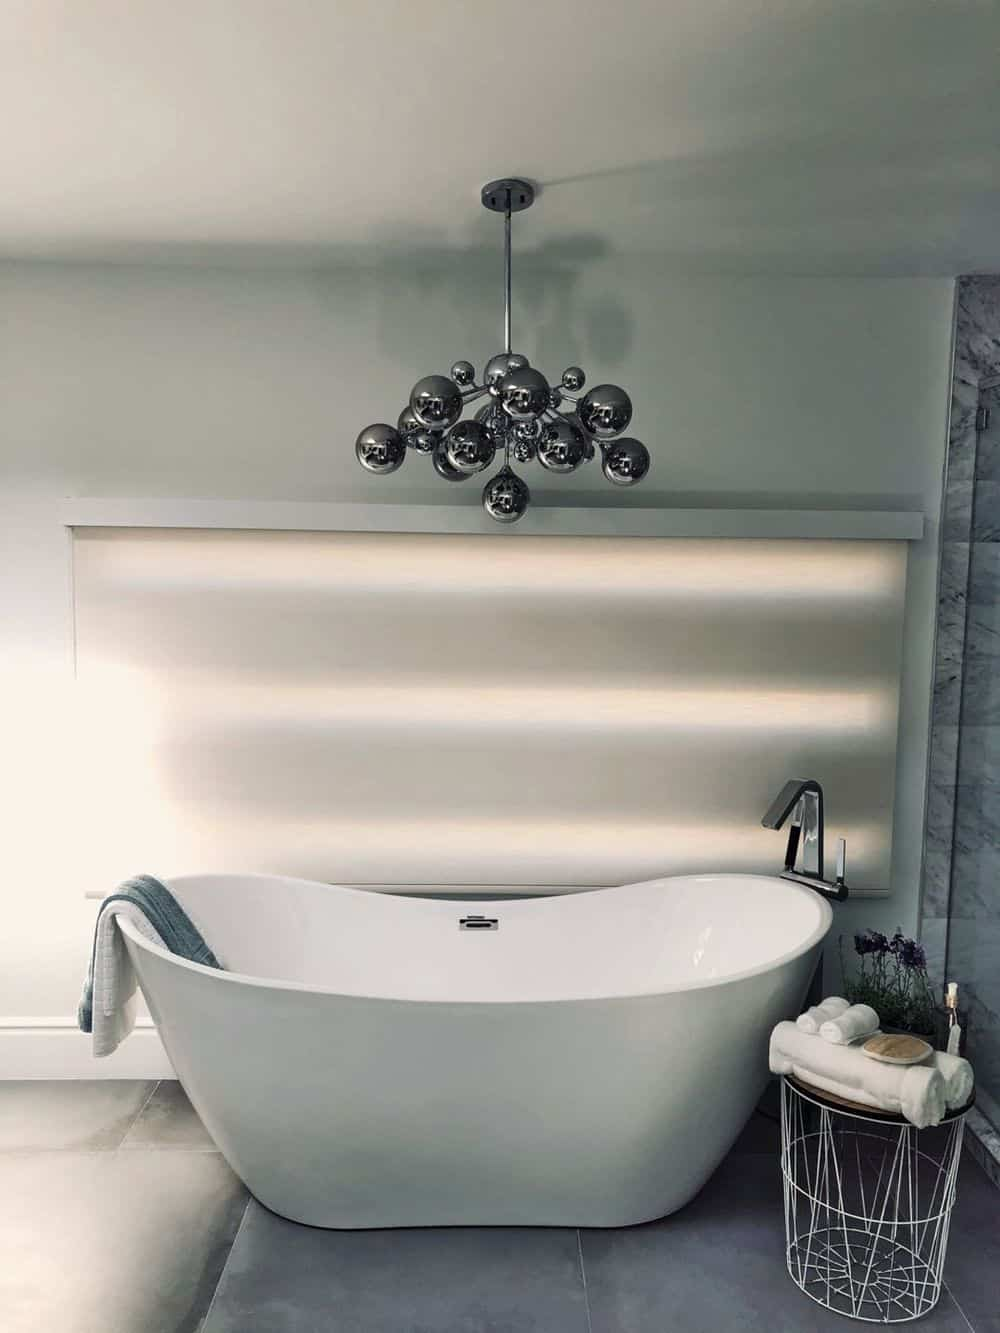 A focused look at this primary bathroom's freestanding tub set next to the window featuring a roller window shade and is lighted by a modern chandelier.